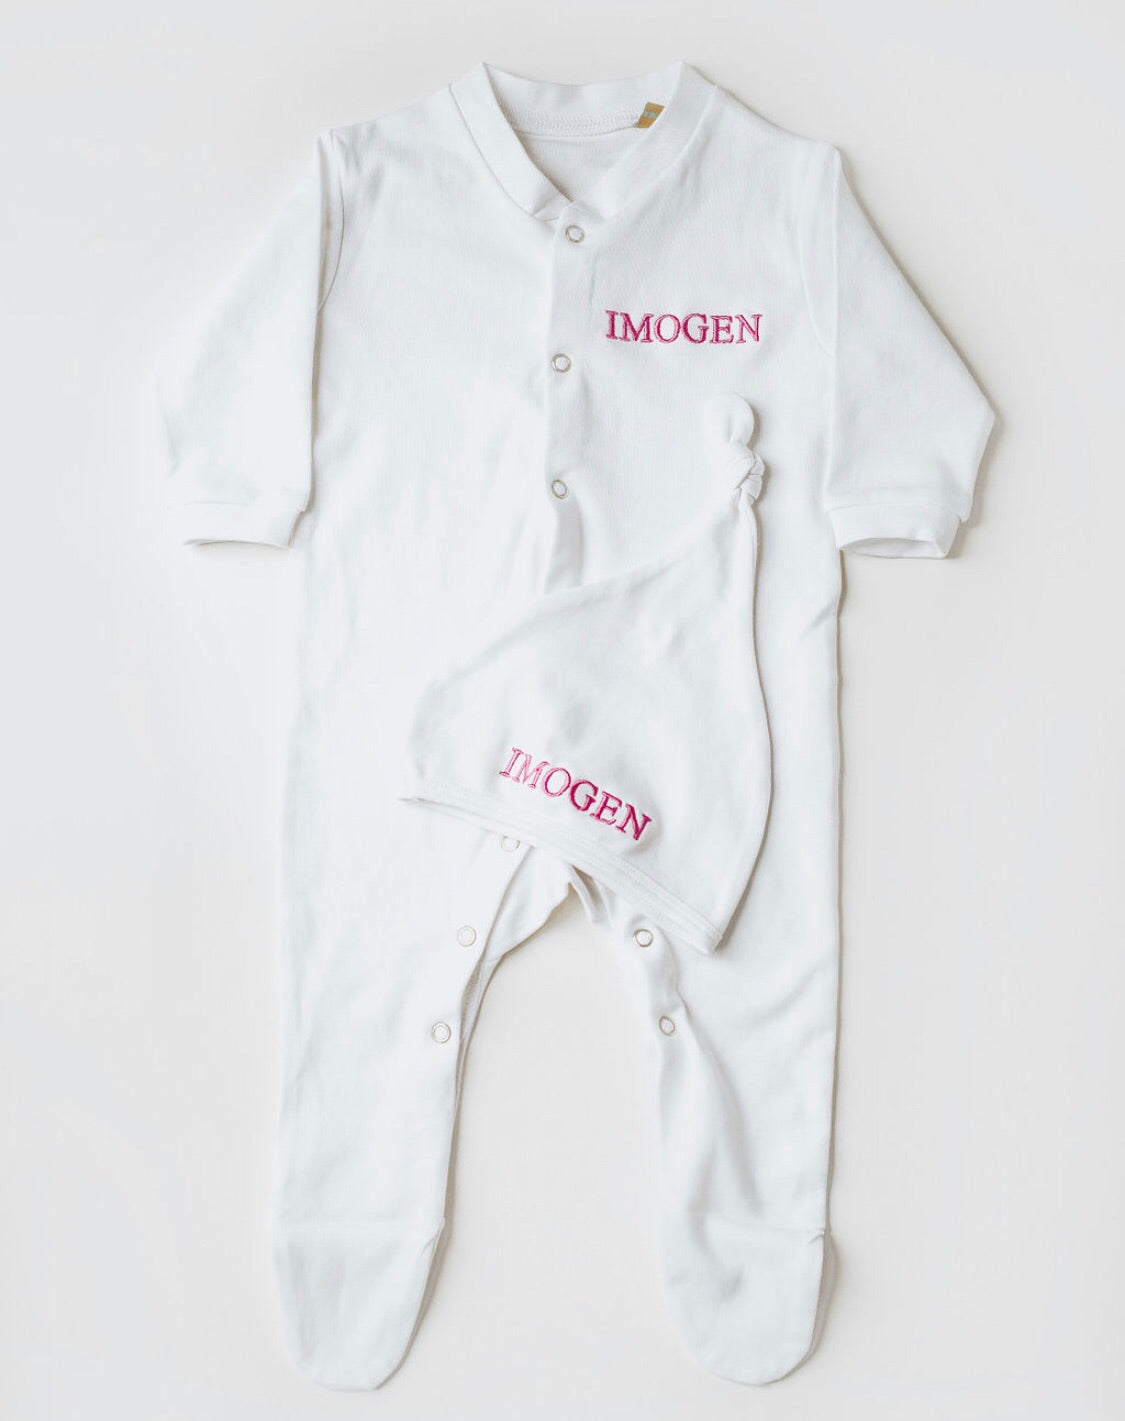 'My first outfit'  Embroidered Gift set